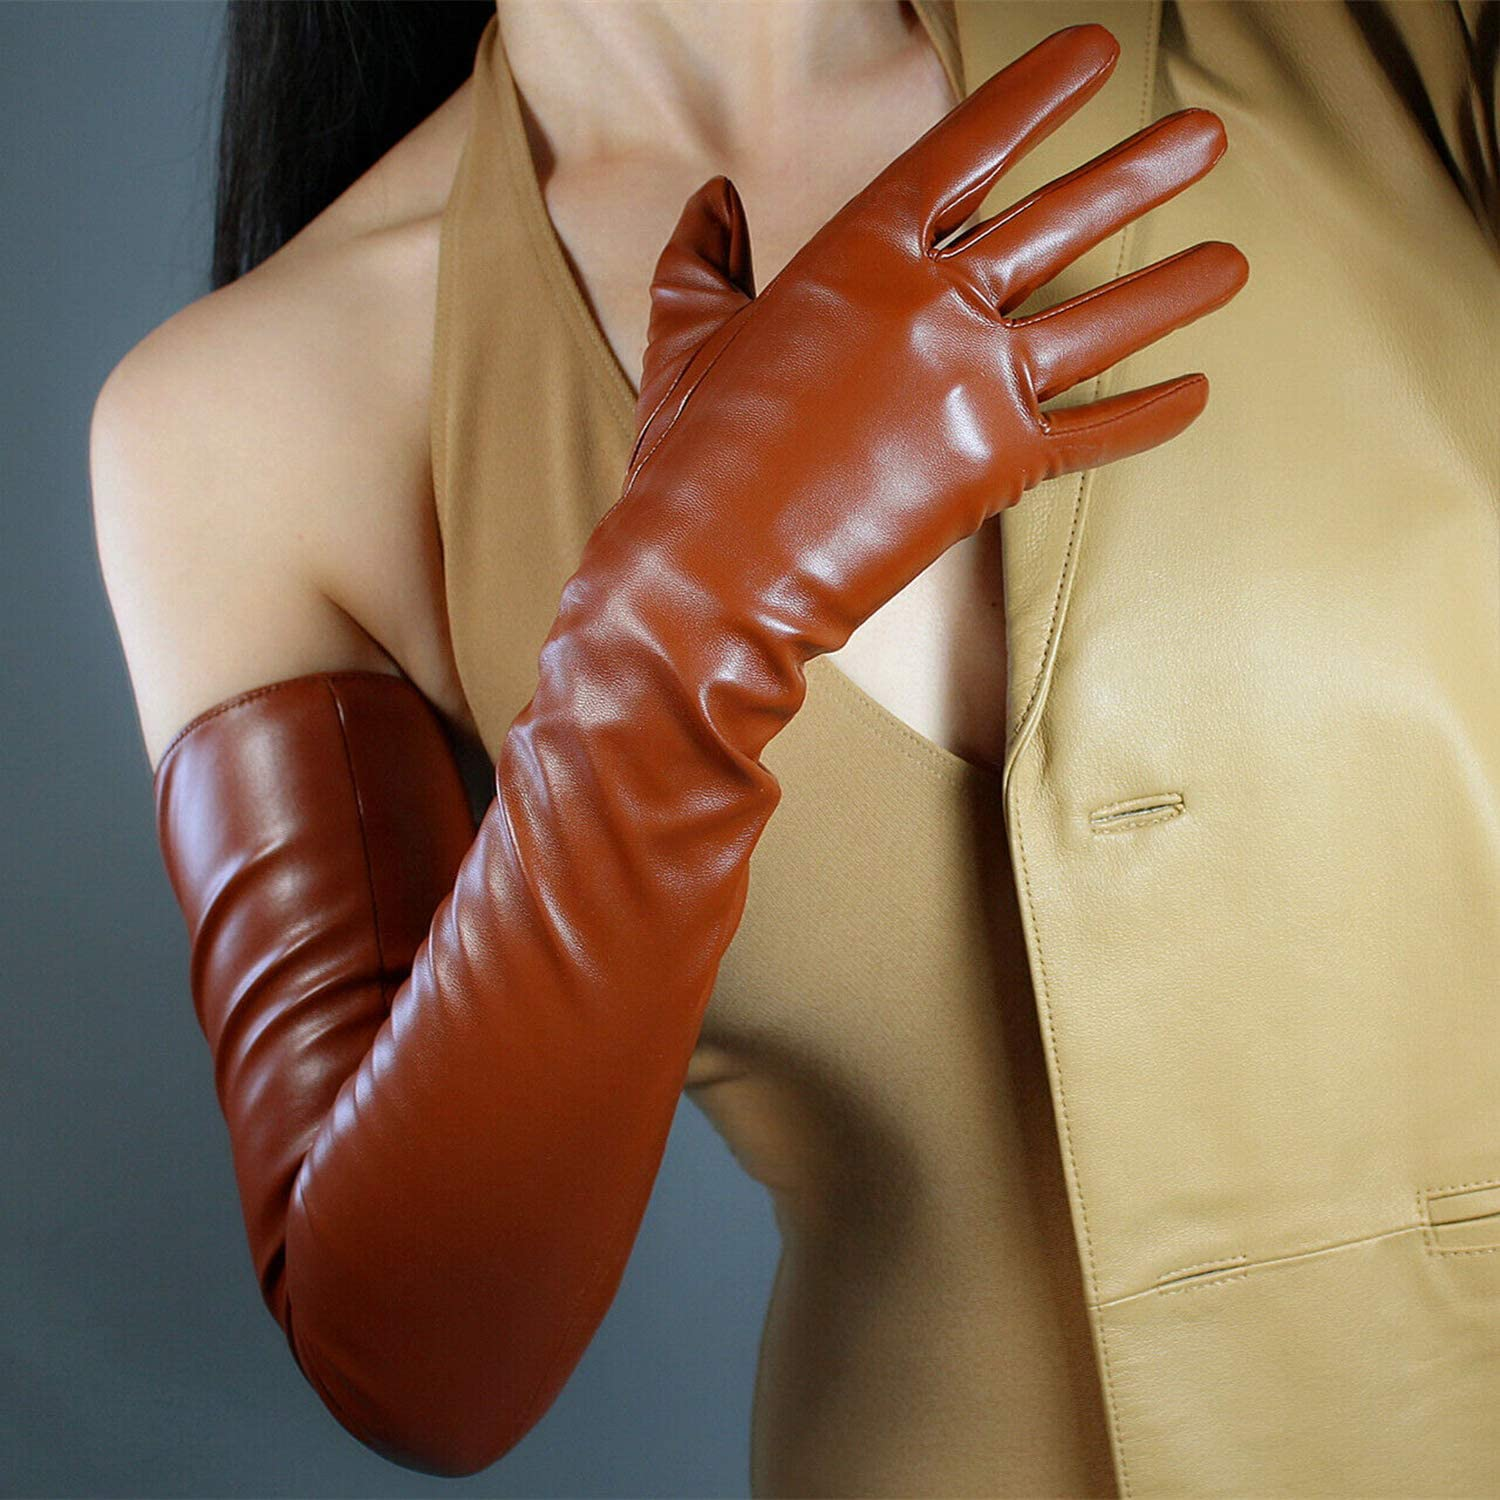 DooWay EXTRA LONG GLOVES Faux Leather PU Stretchy 28-inch Brown for Halloween Evening Dress Party Finger Gloves